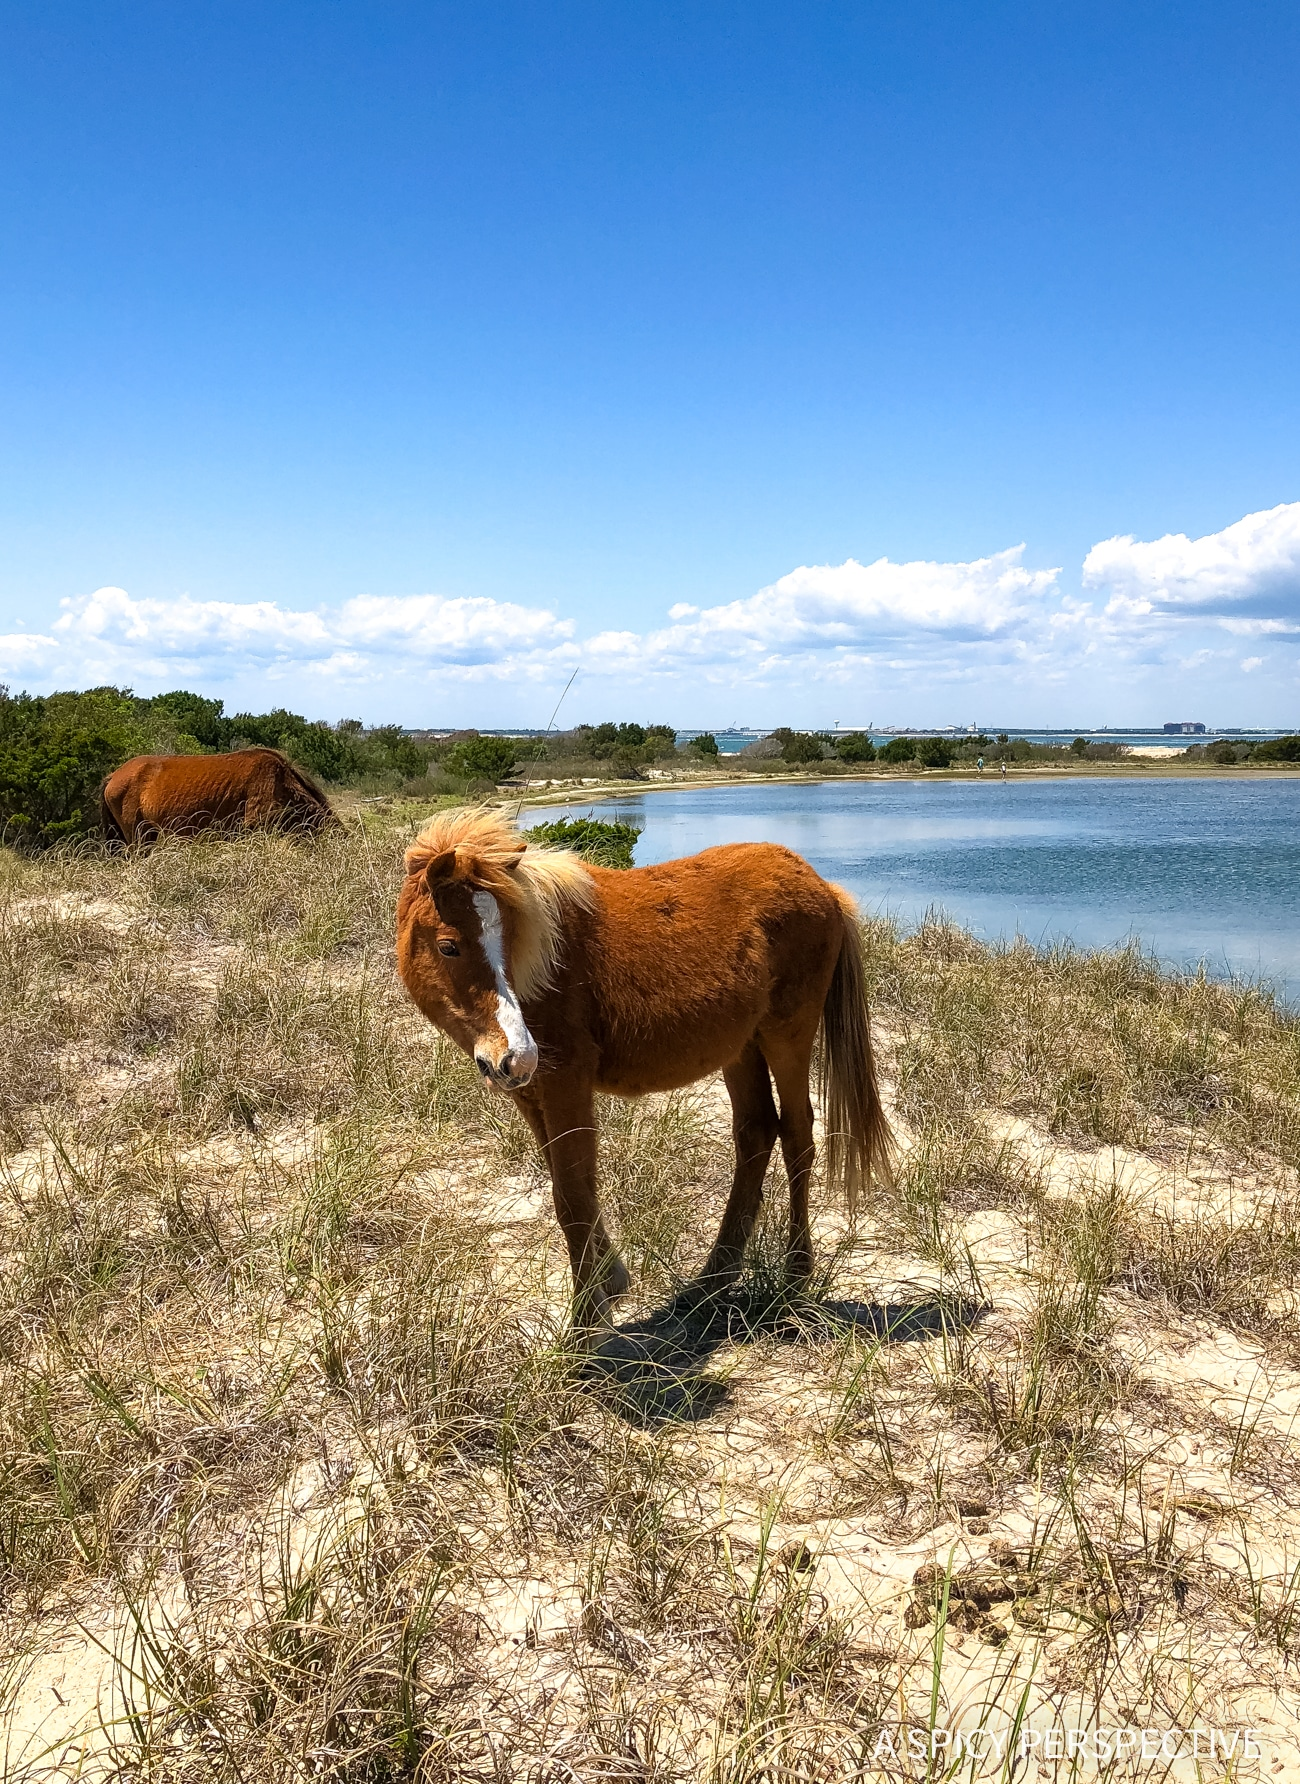 Shackleford Banks - Why You Should Visit The Crystal Coast Outer Banks NC (Emerald Isle Vacation Travel Tips!)